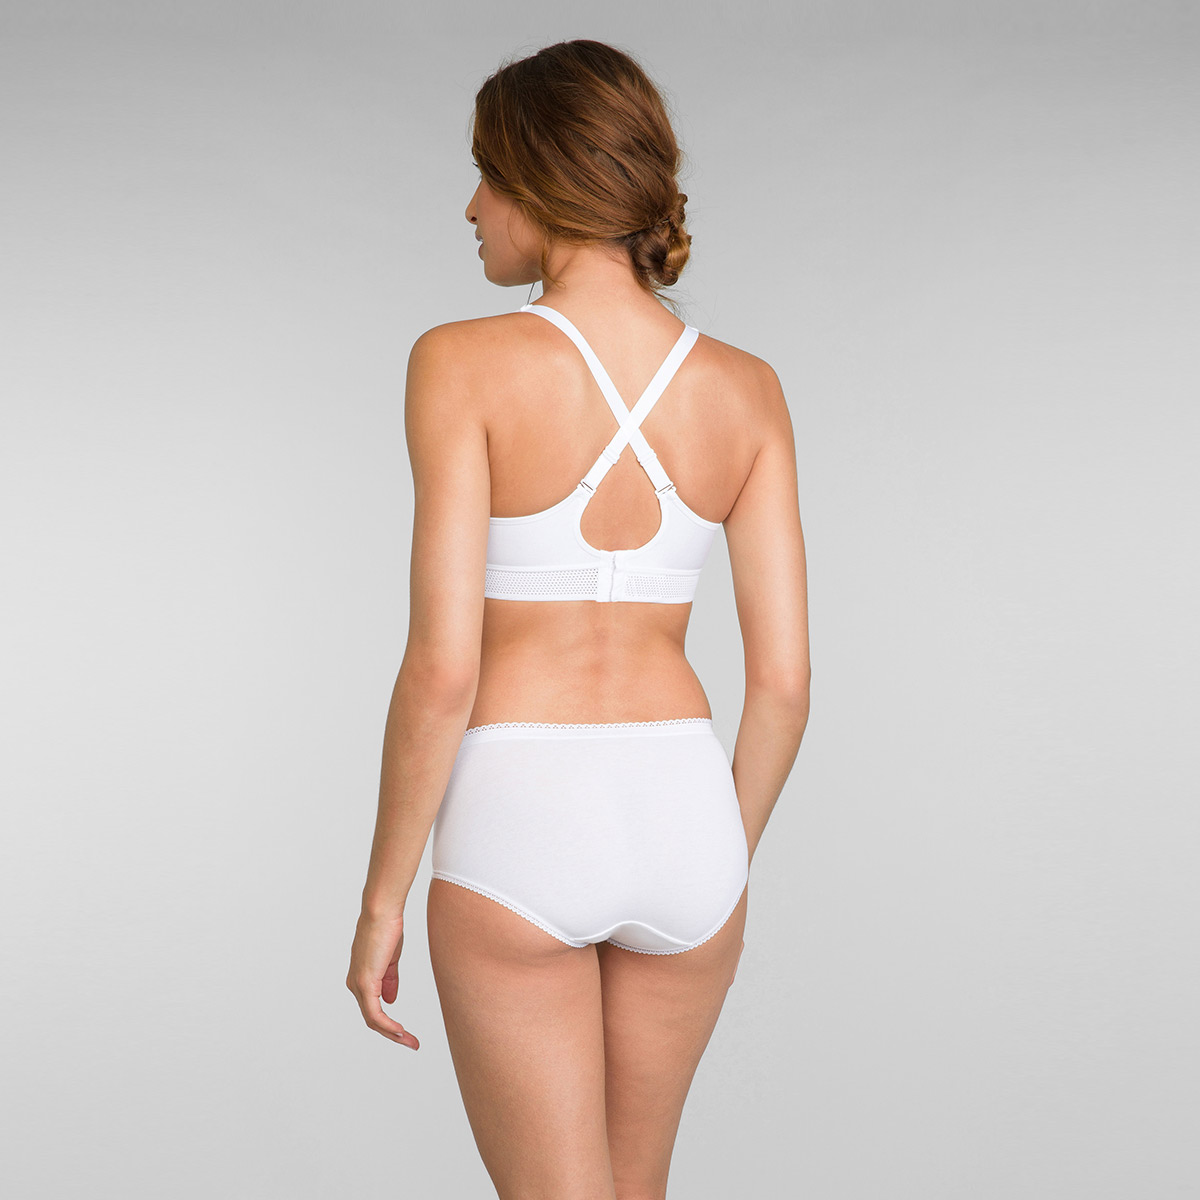 Sujetador de algodón blanco Feel Good Support Algodón, , PLAYTEX